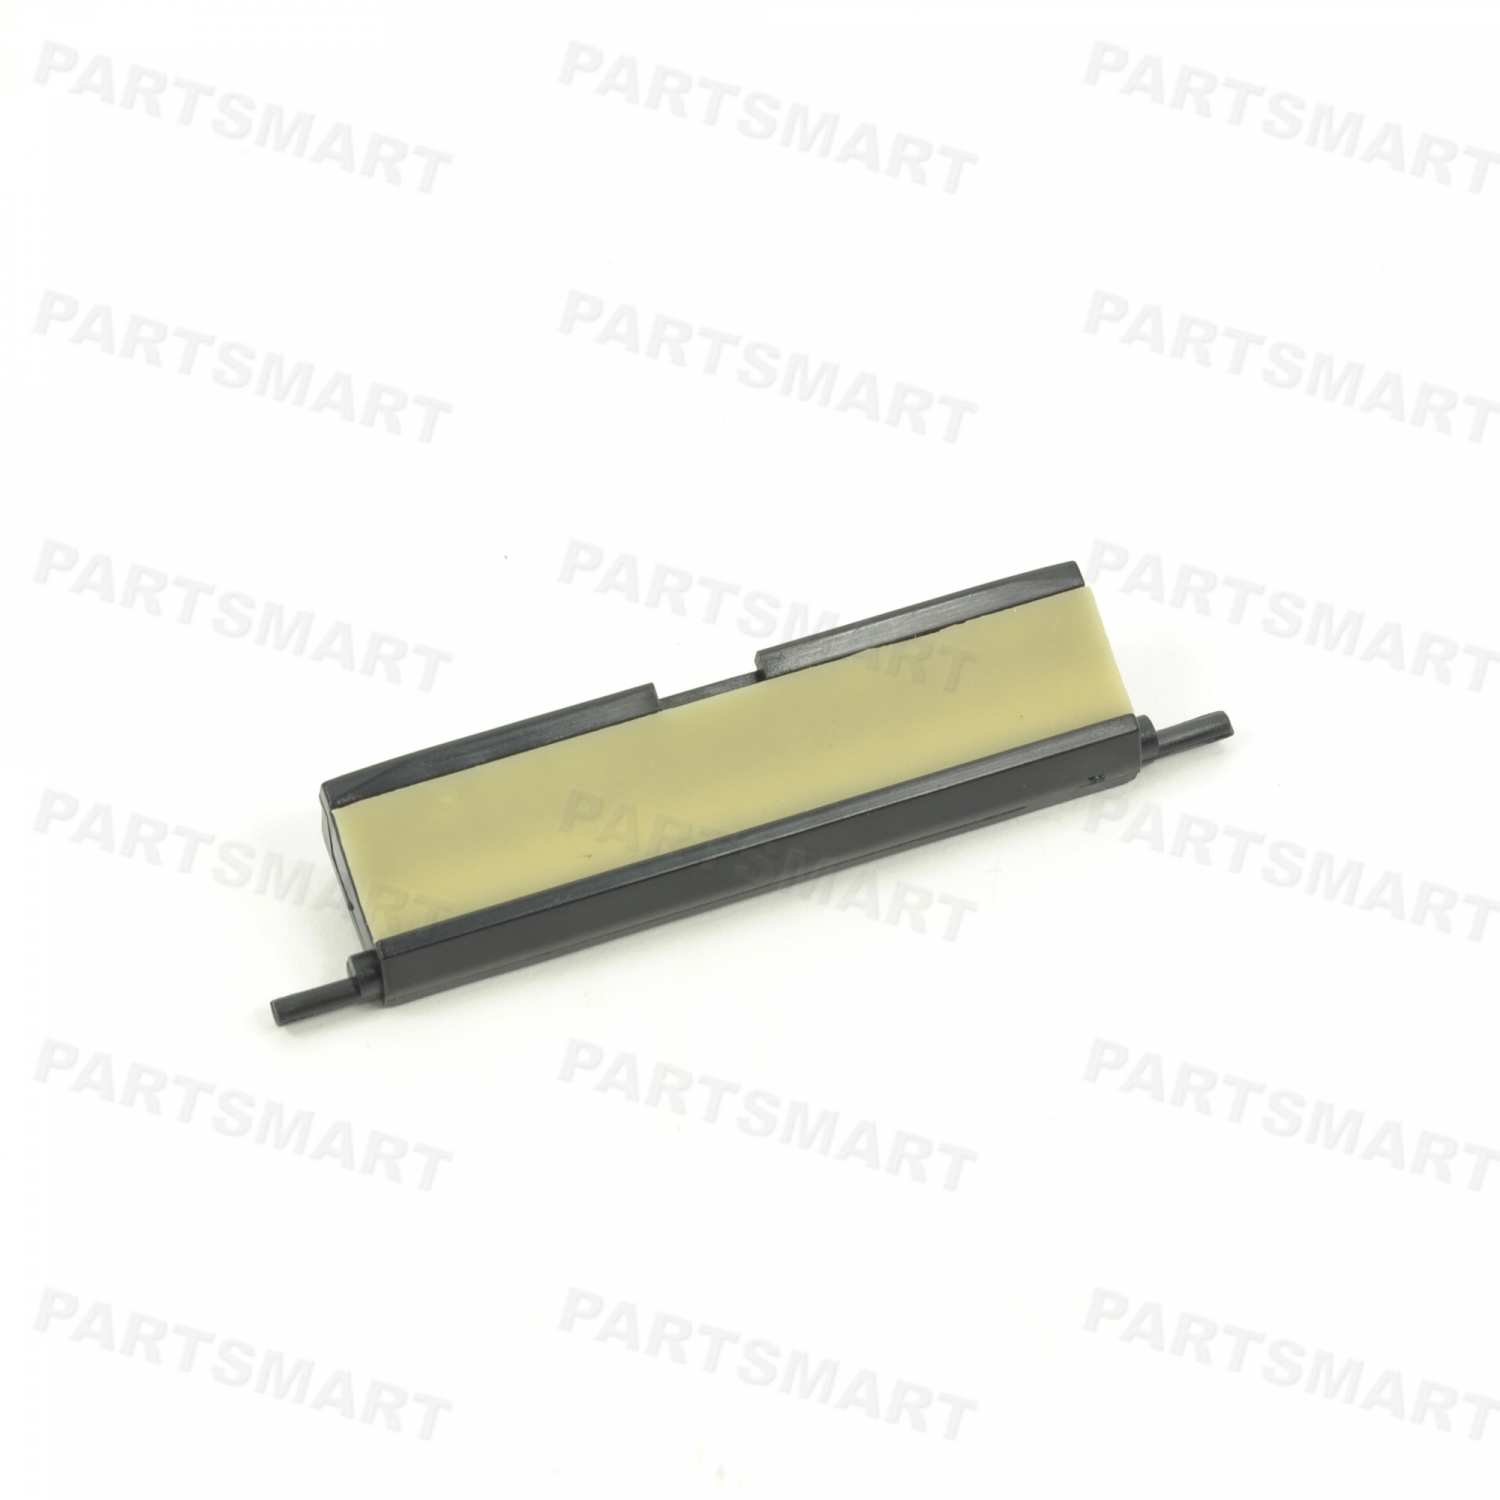 JC93-00830A Separation Pad for HP LaserJet M436